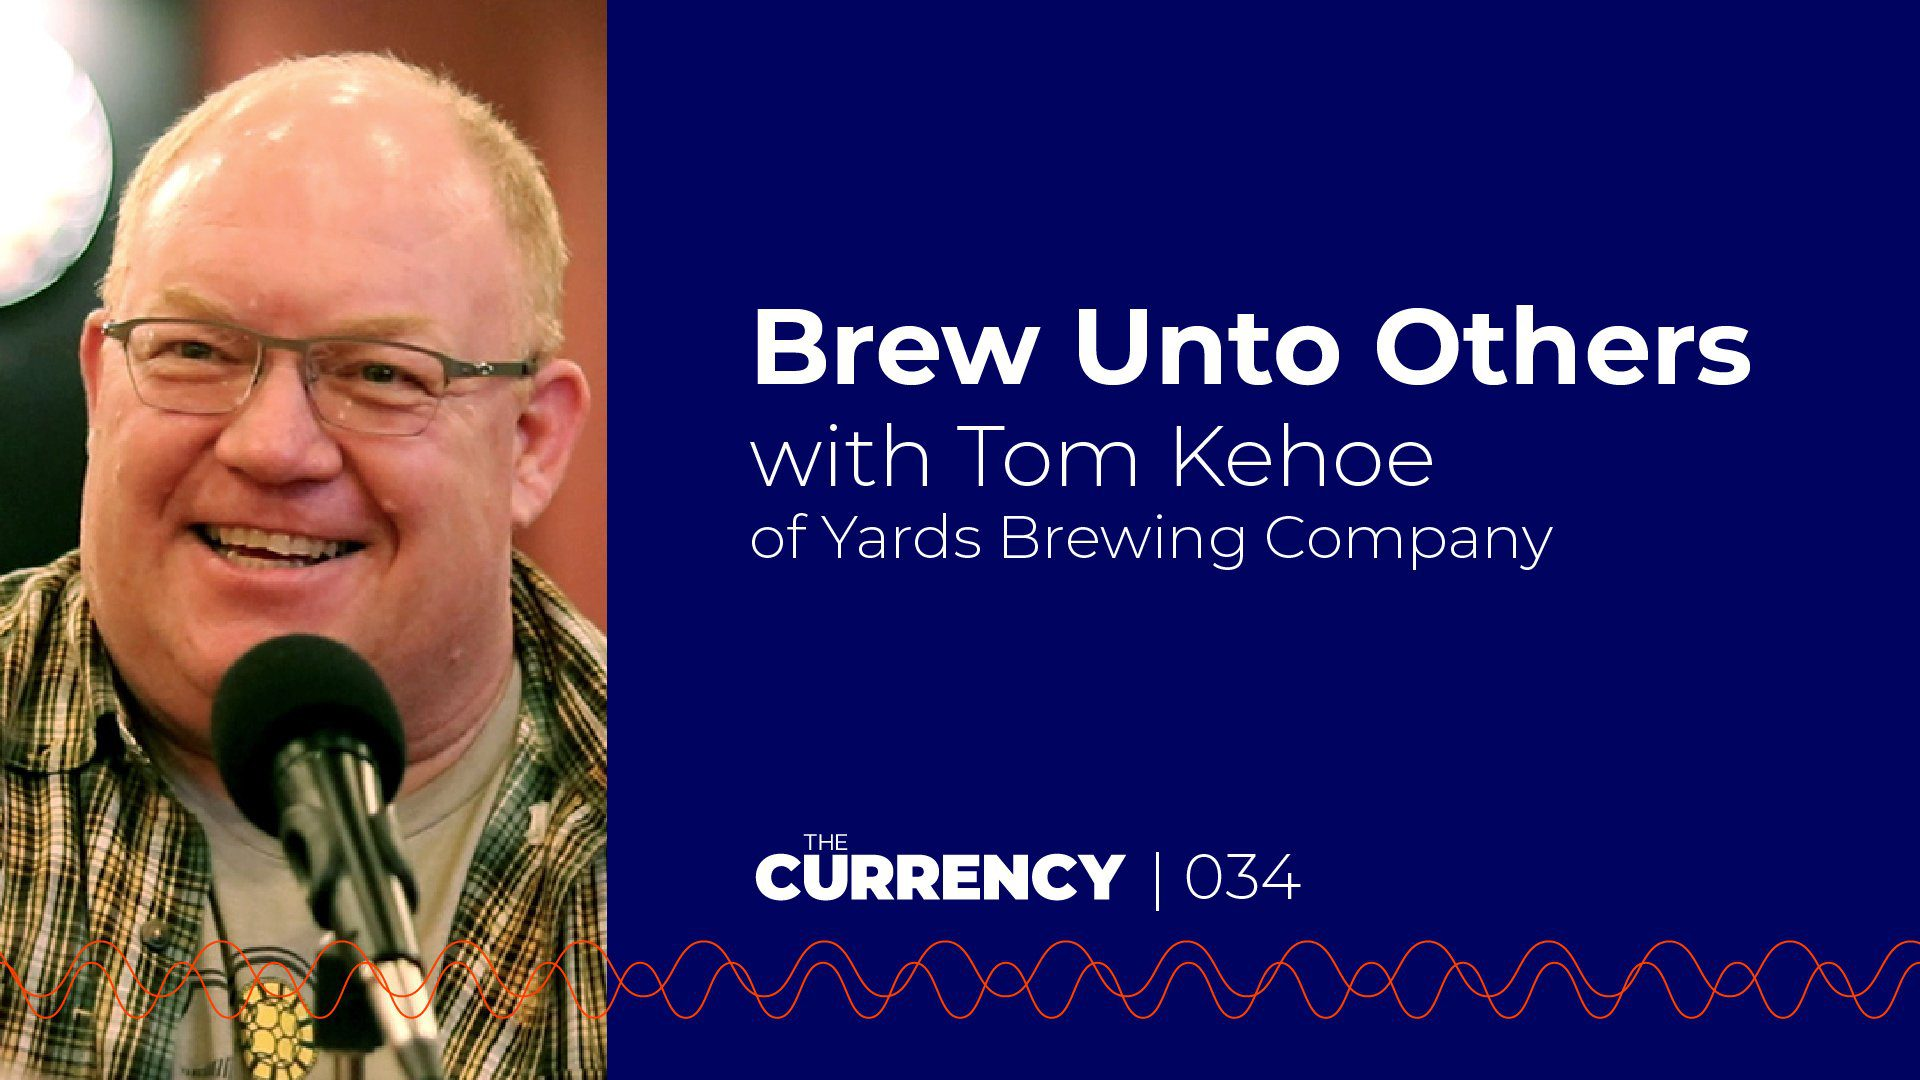 The Currency: [034] Brew Unto Others with Tom Kehoe of Yards Brewing Company